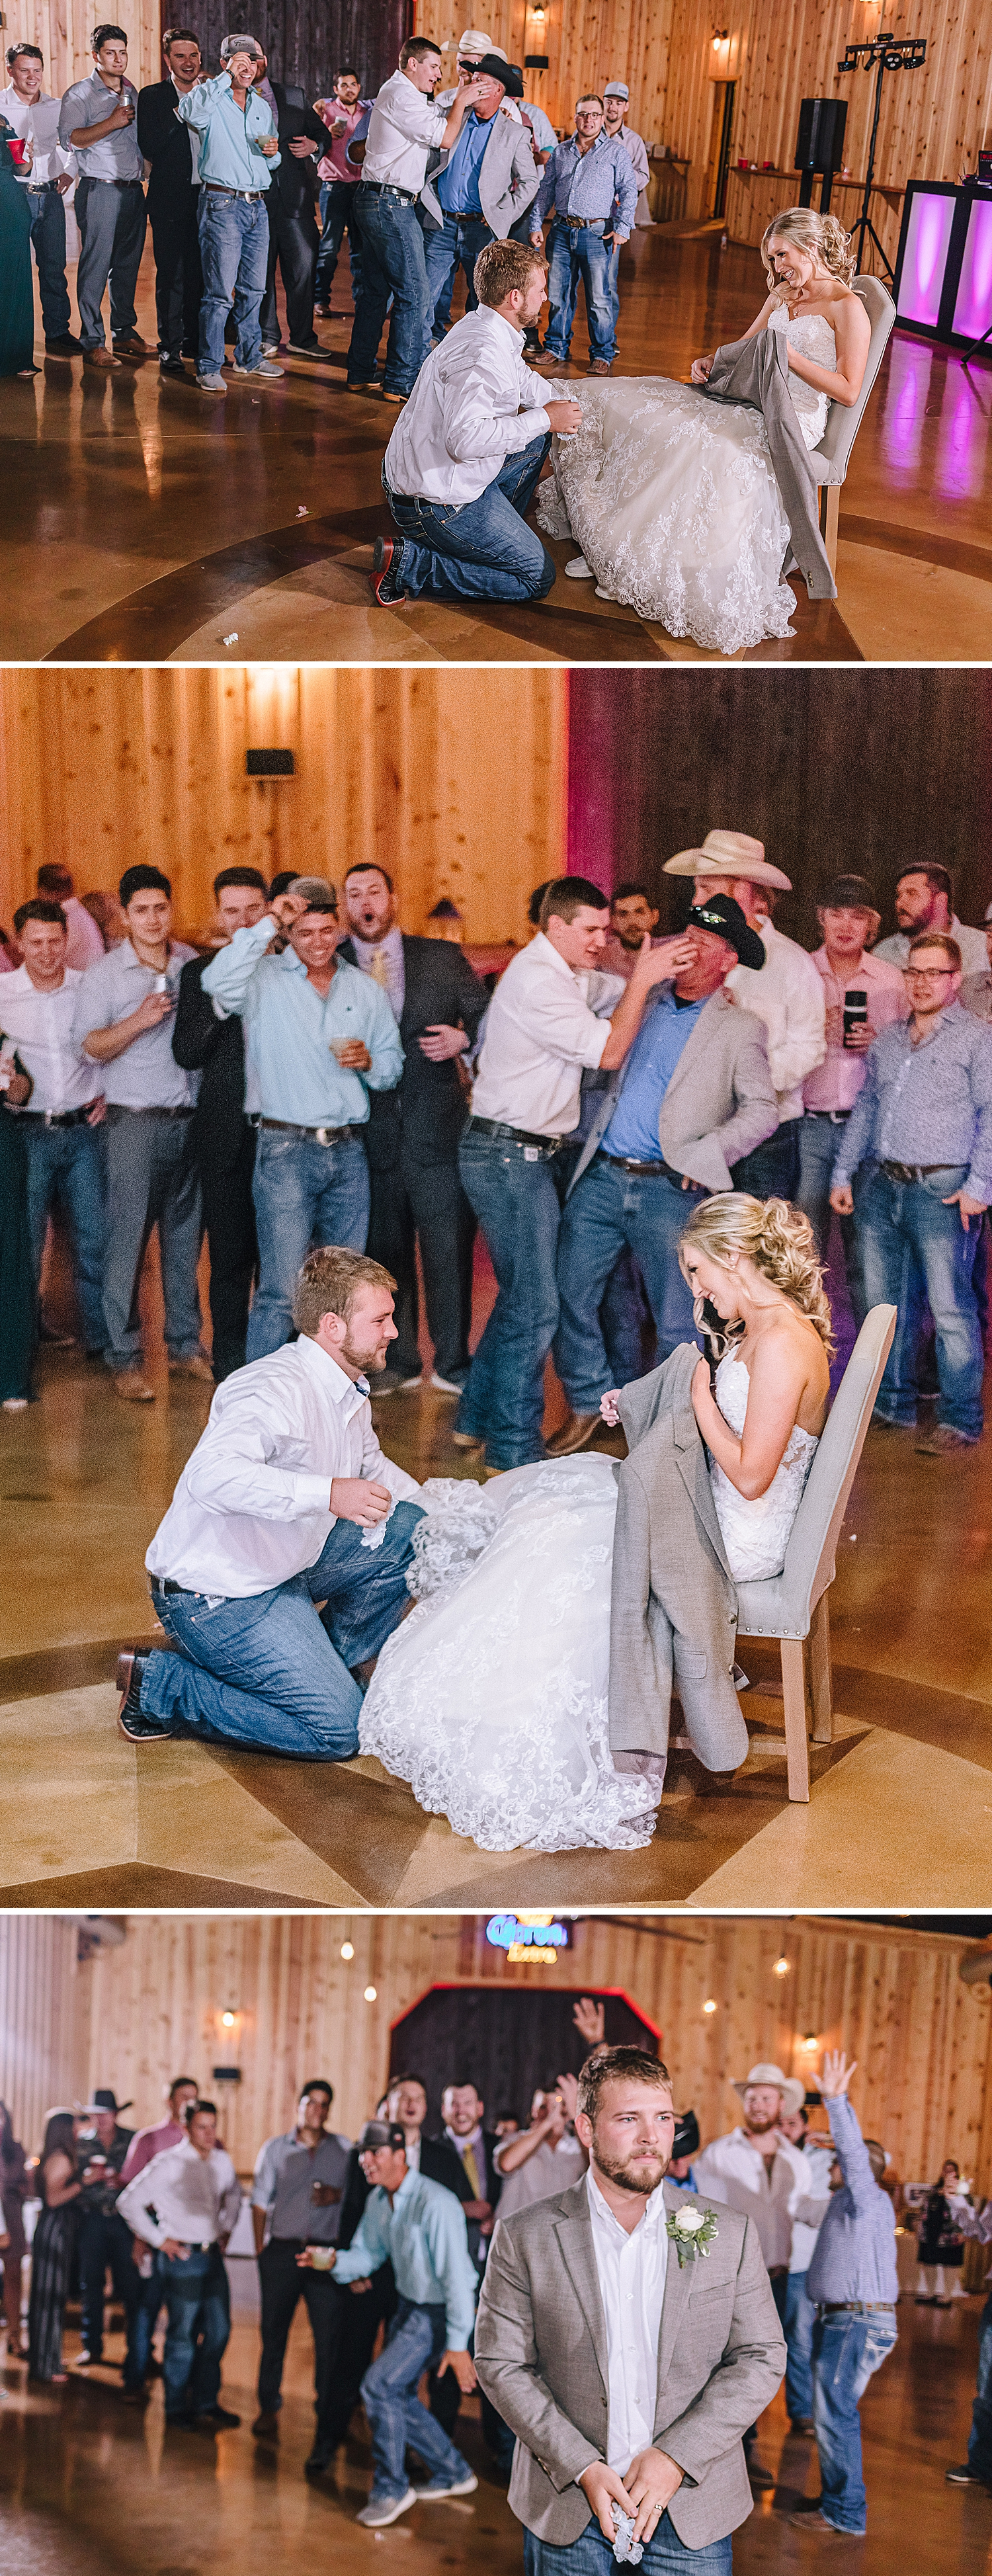 Rackler-Ranch-LaVernia-Texas-Wedding-Carly-Barton-Photography_0170.jpg